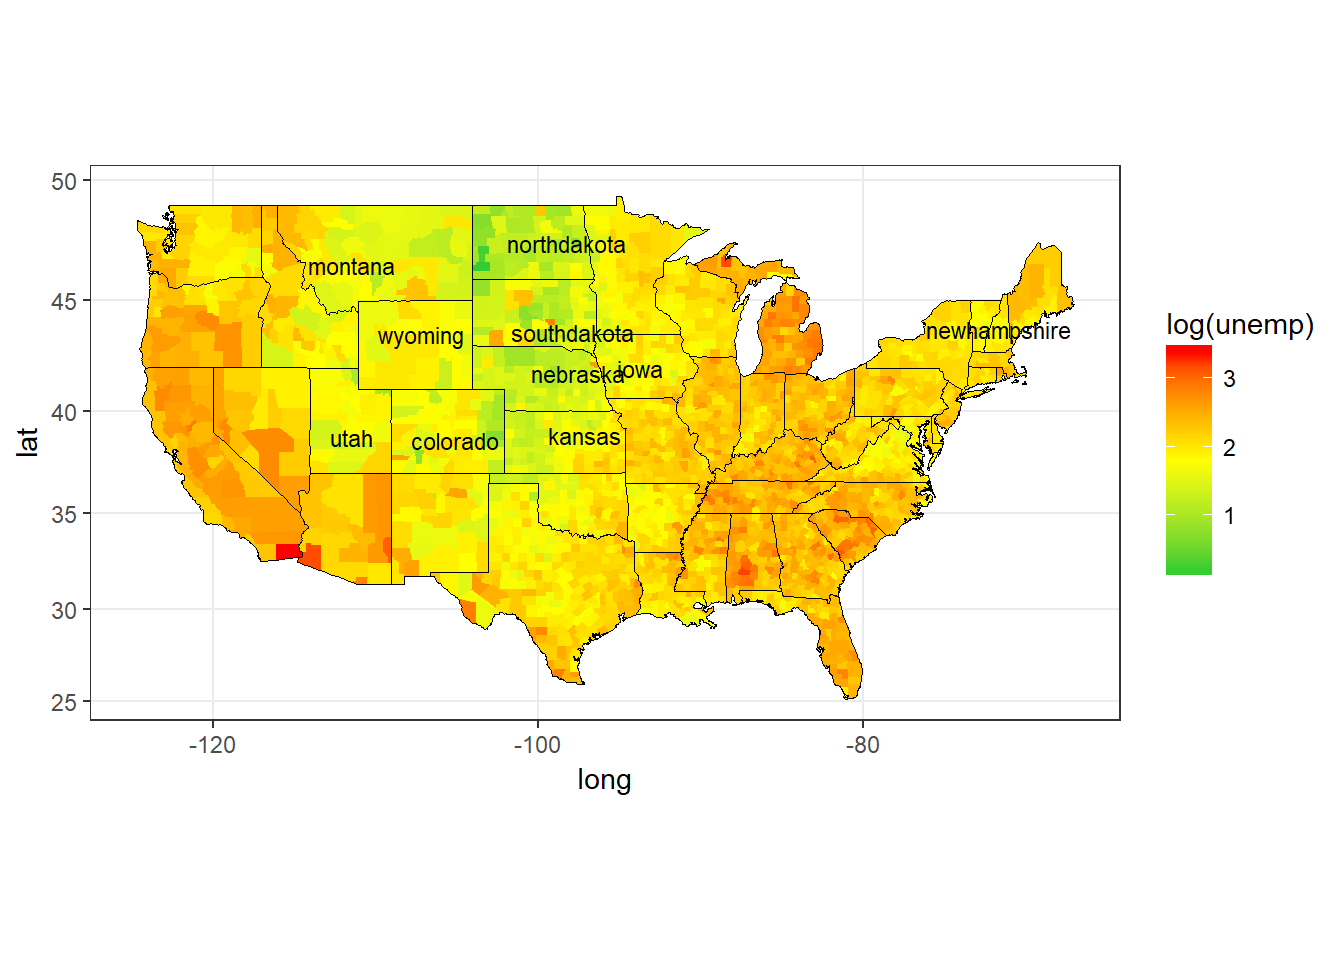 USA Unemployment Rates (Log) by County, 2009